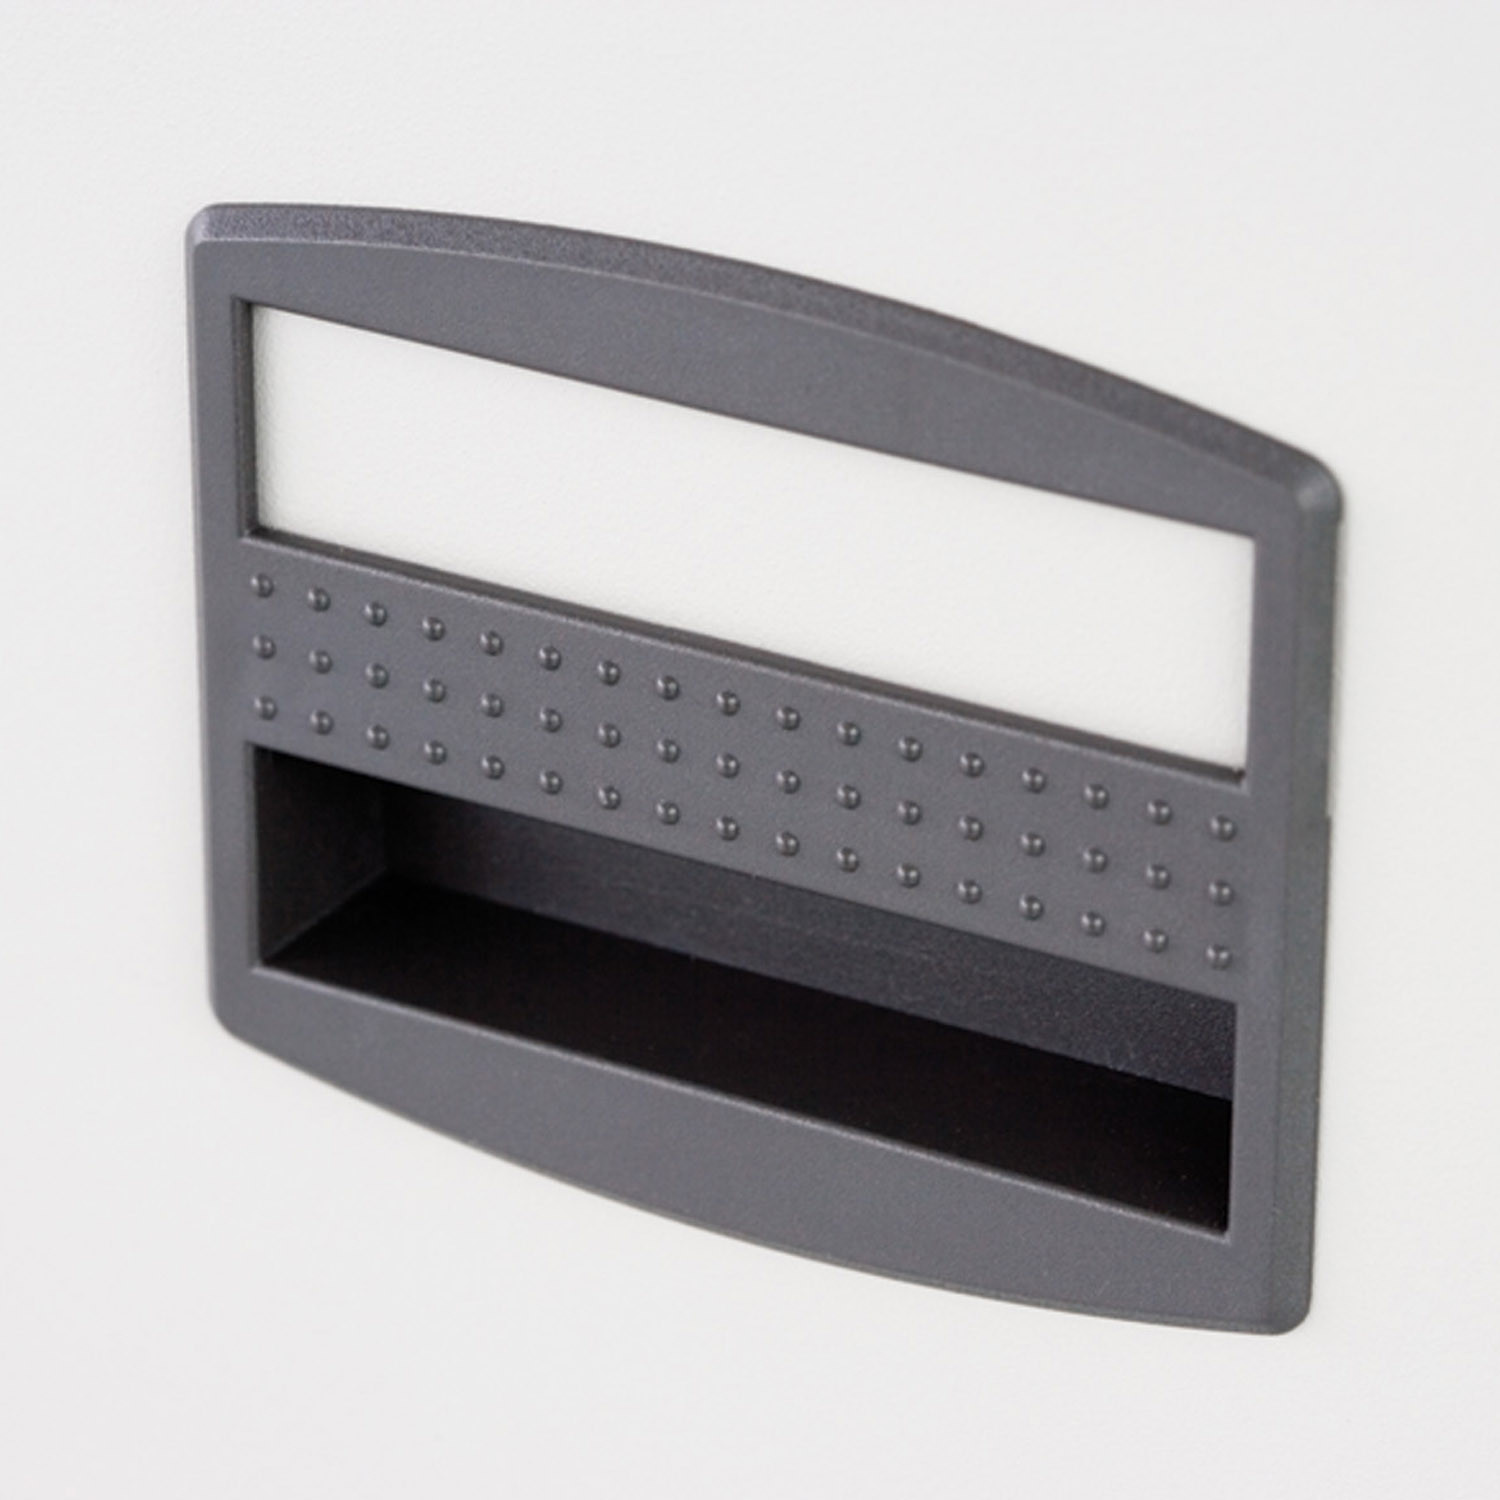 Label Holder for CC Filing Cabinets